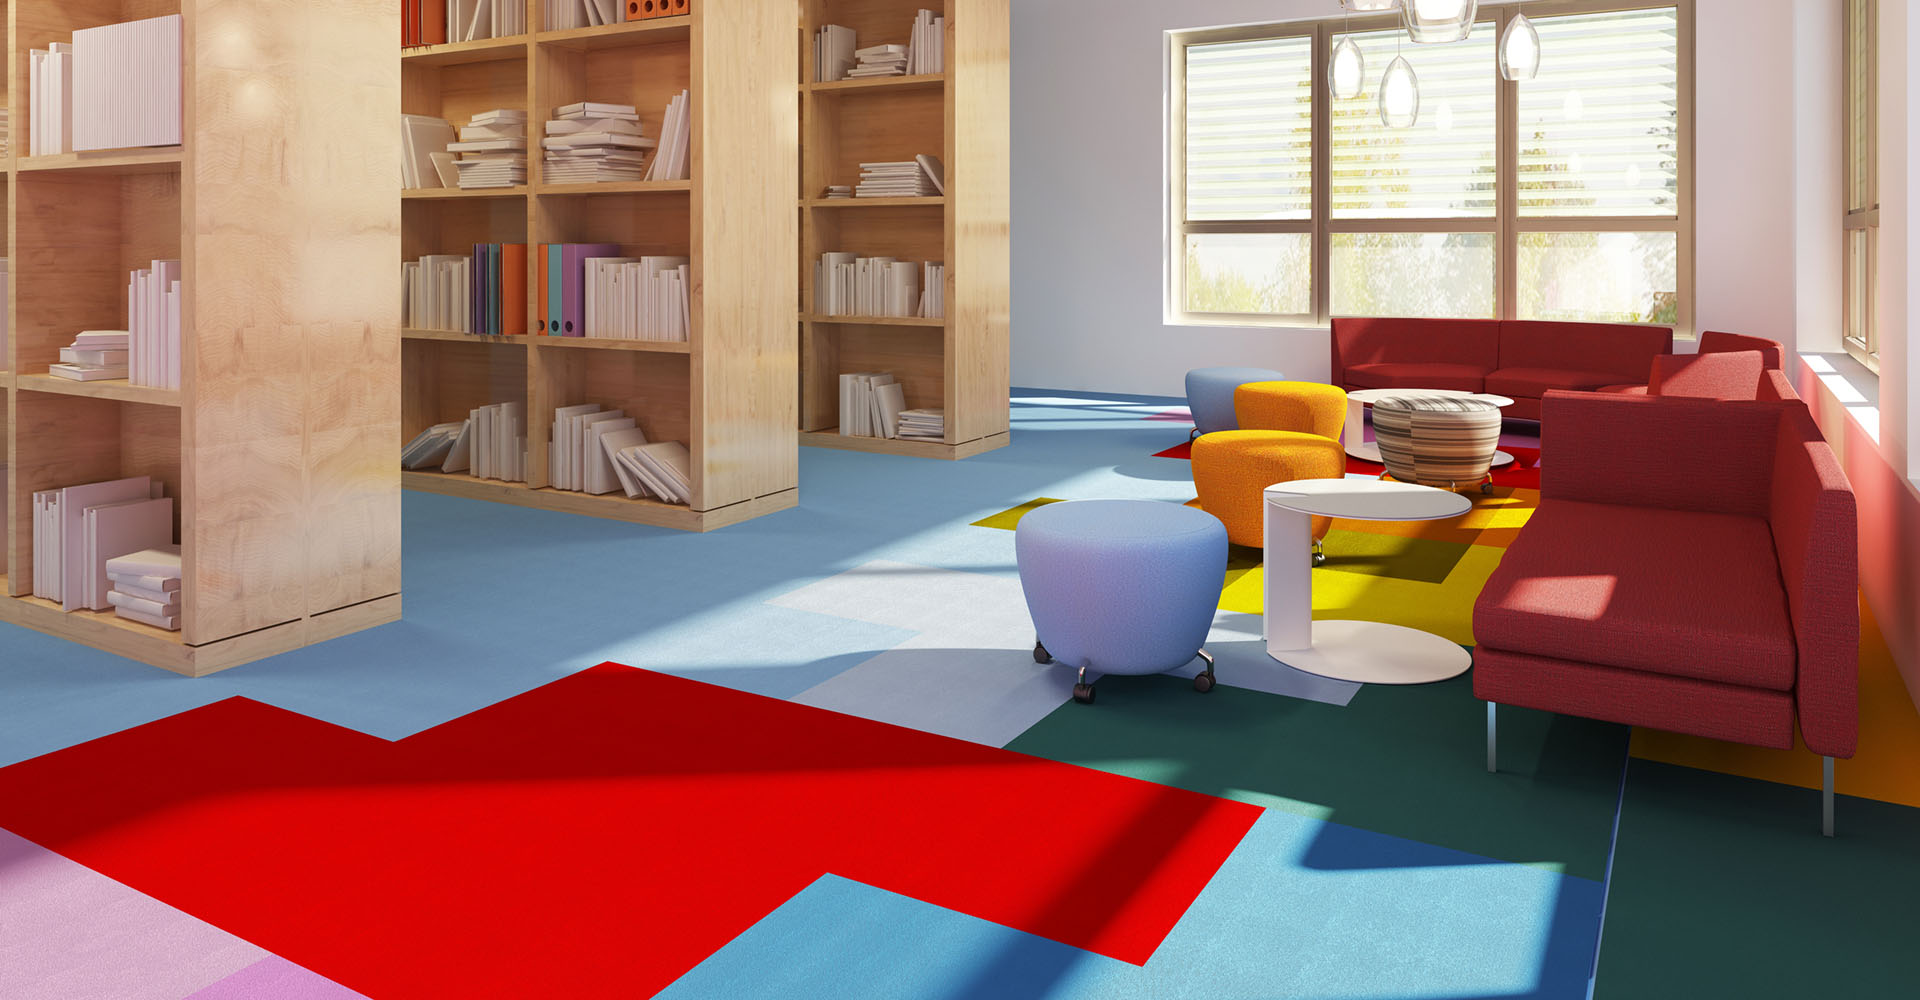 Specialist flooring contractors, Home